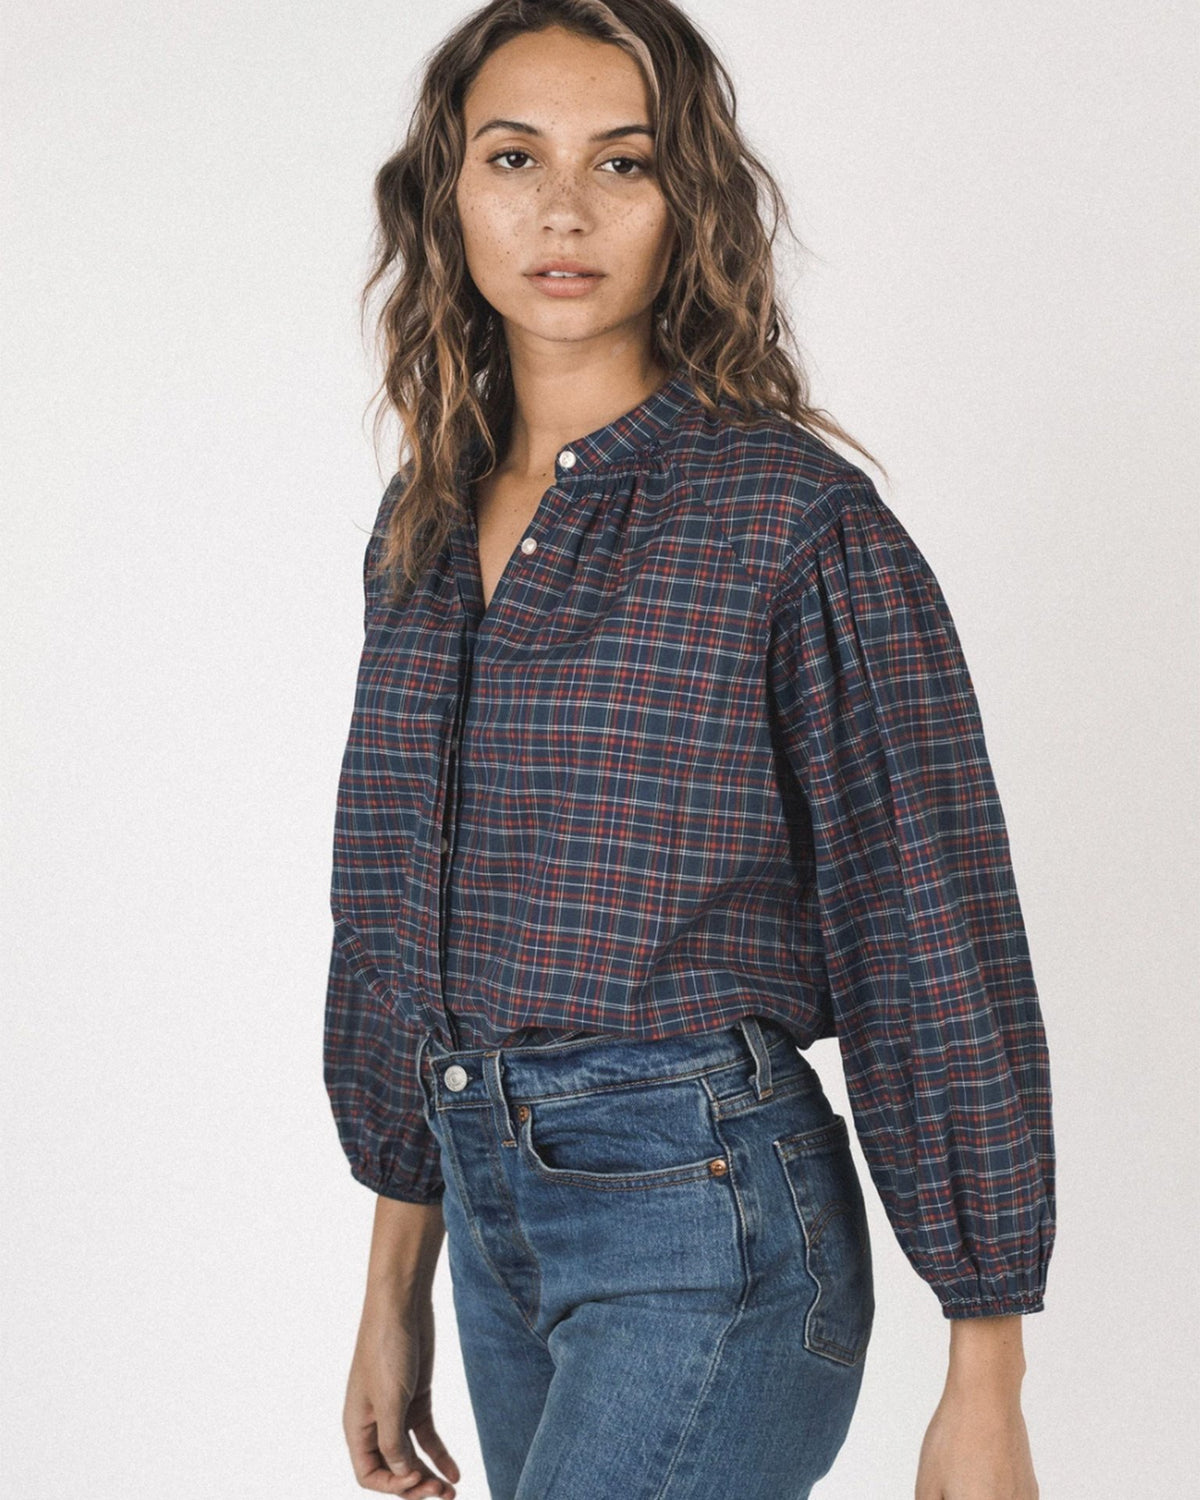 Trovata Birds of Paradis Clothing Karsyn Multi-Stitch Blouse in Heritage Plaid